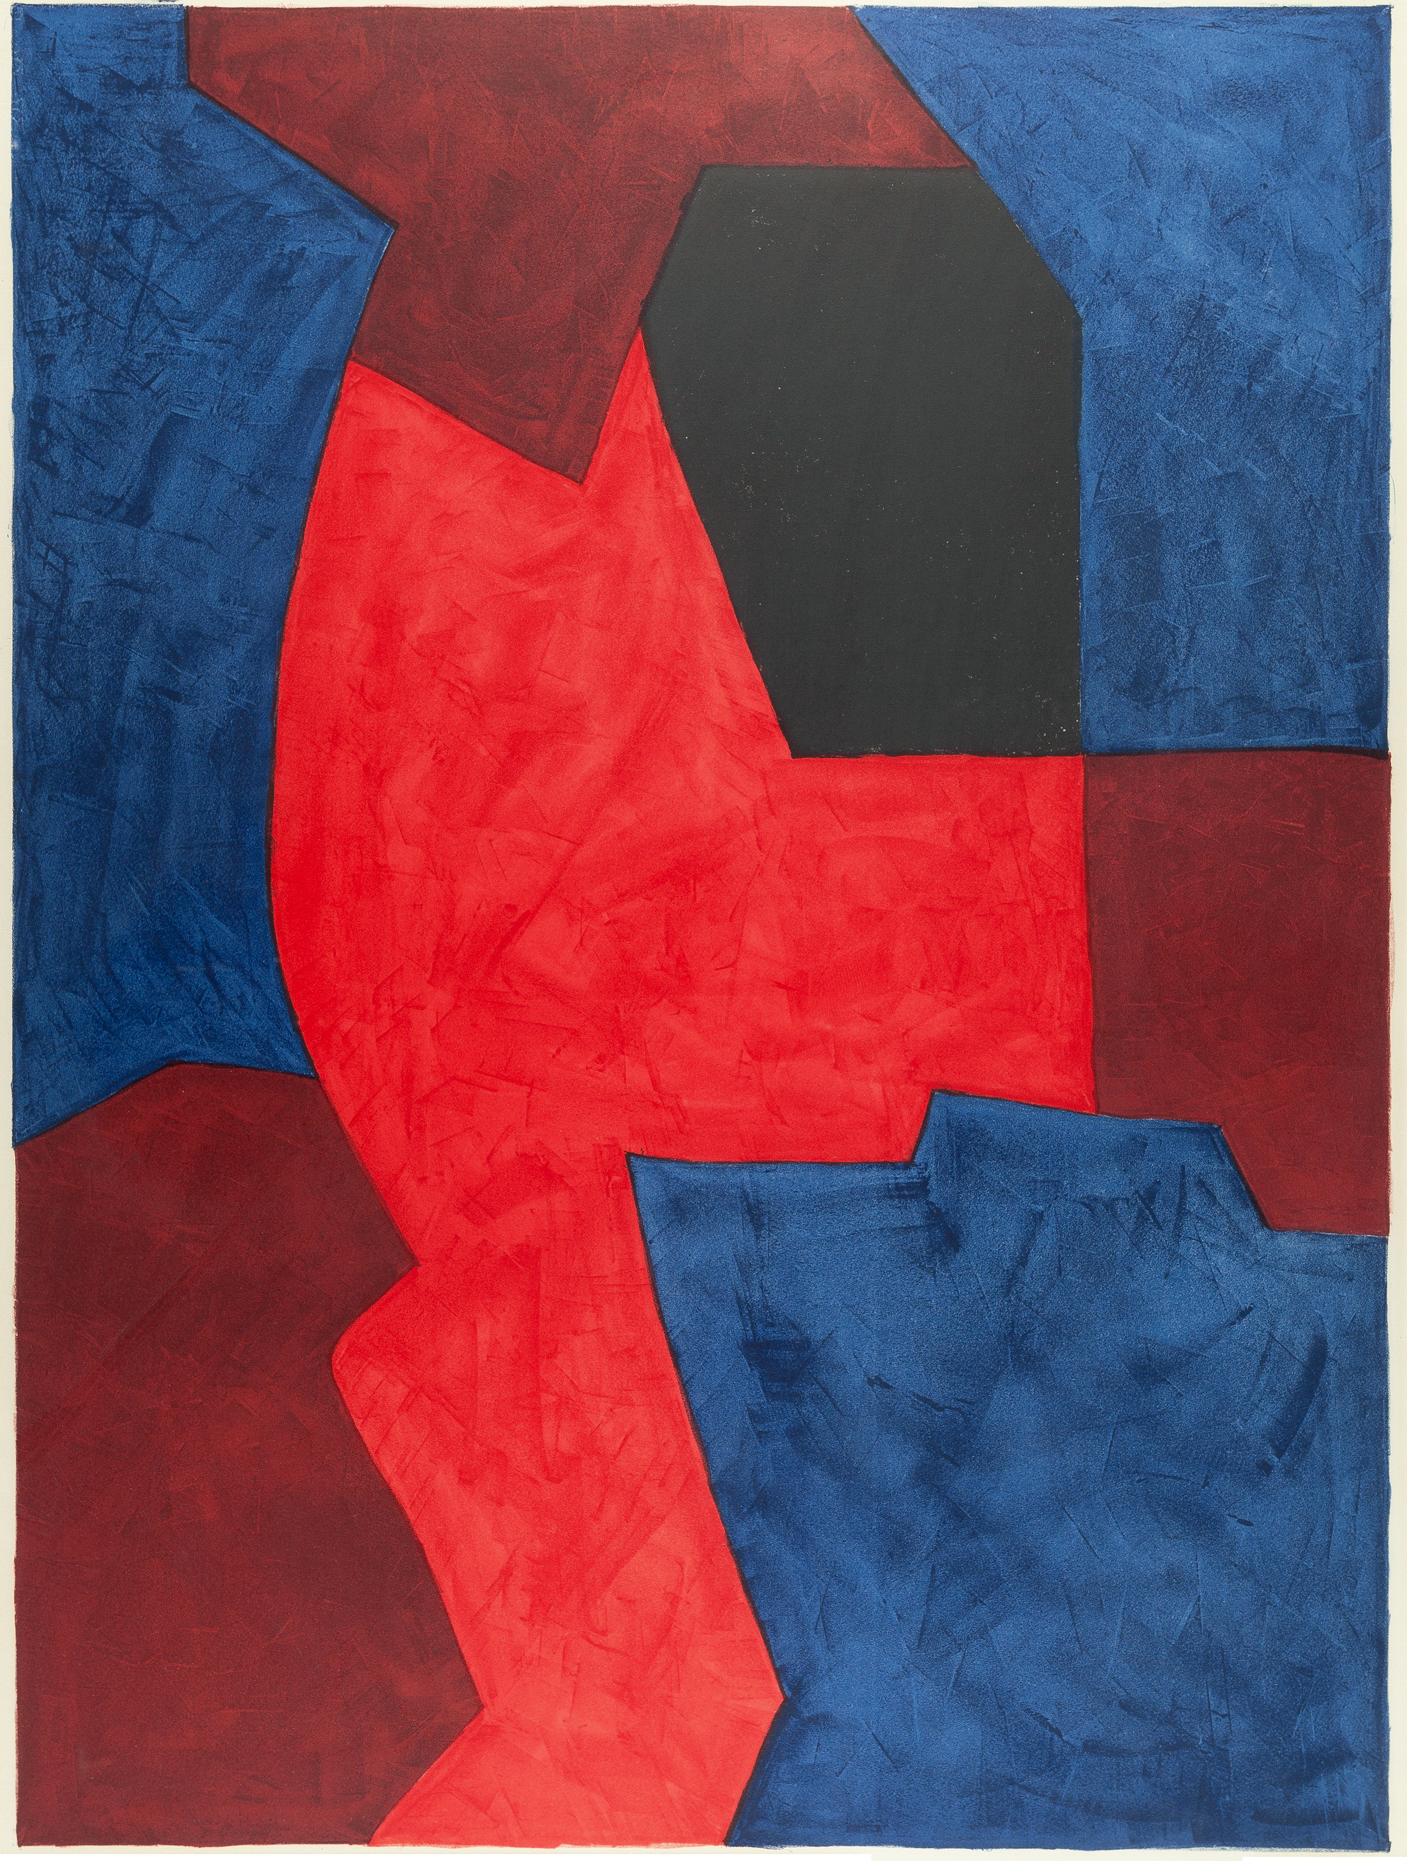 1969, lithograph on paper, edition, 63,5 x 84,7 cm